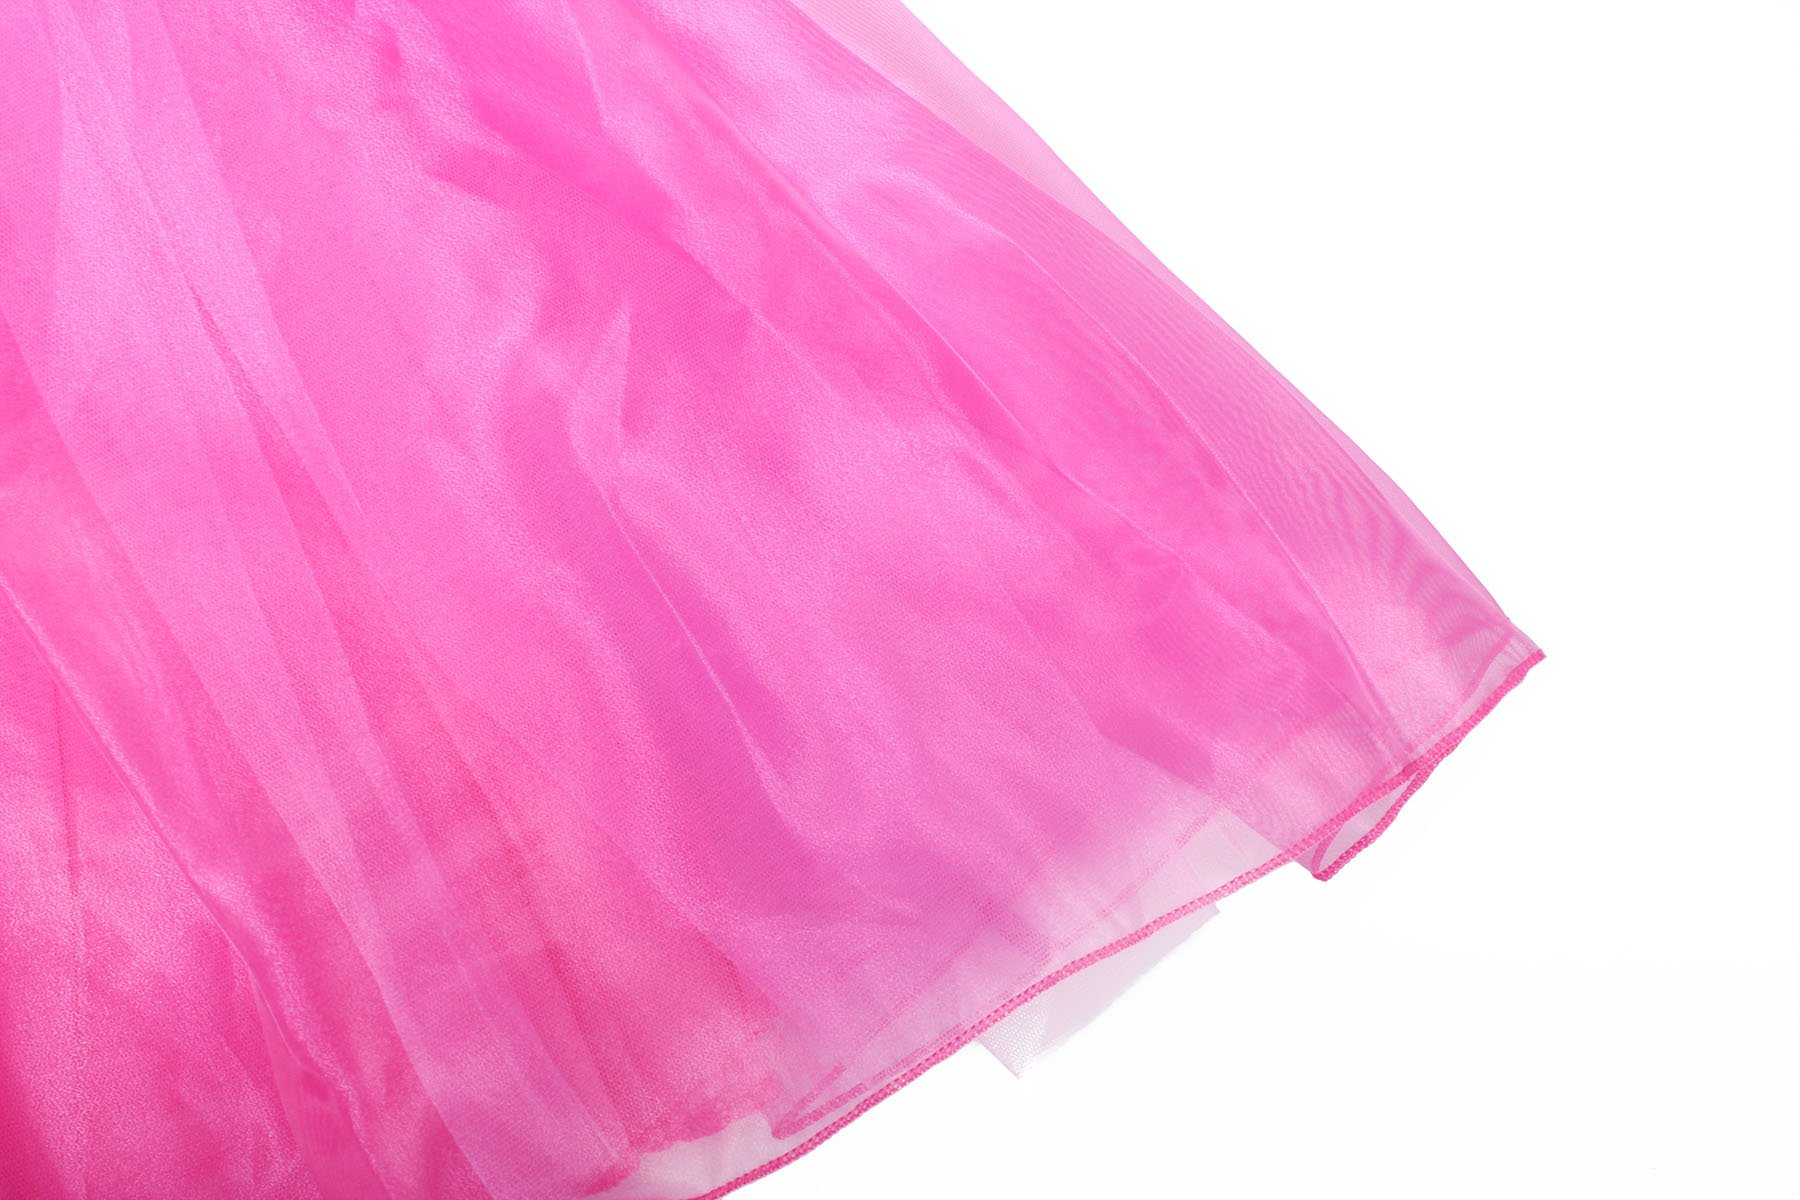 ReliBeauty Girls Drop Shoulder Princess Aurora Costume Dress up, Hot Pink, 7-8 by ReliBeauty (Image #3)